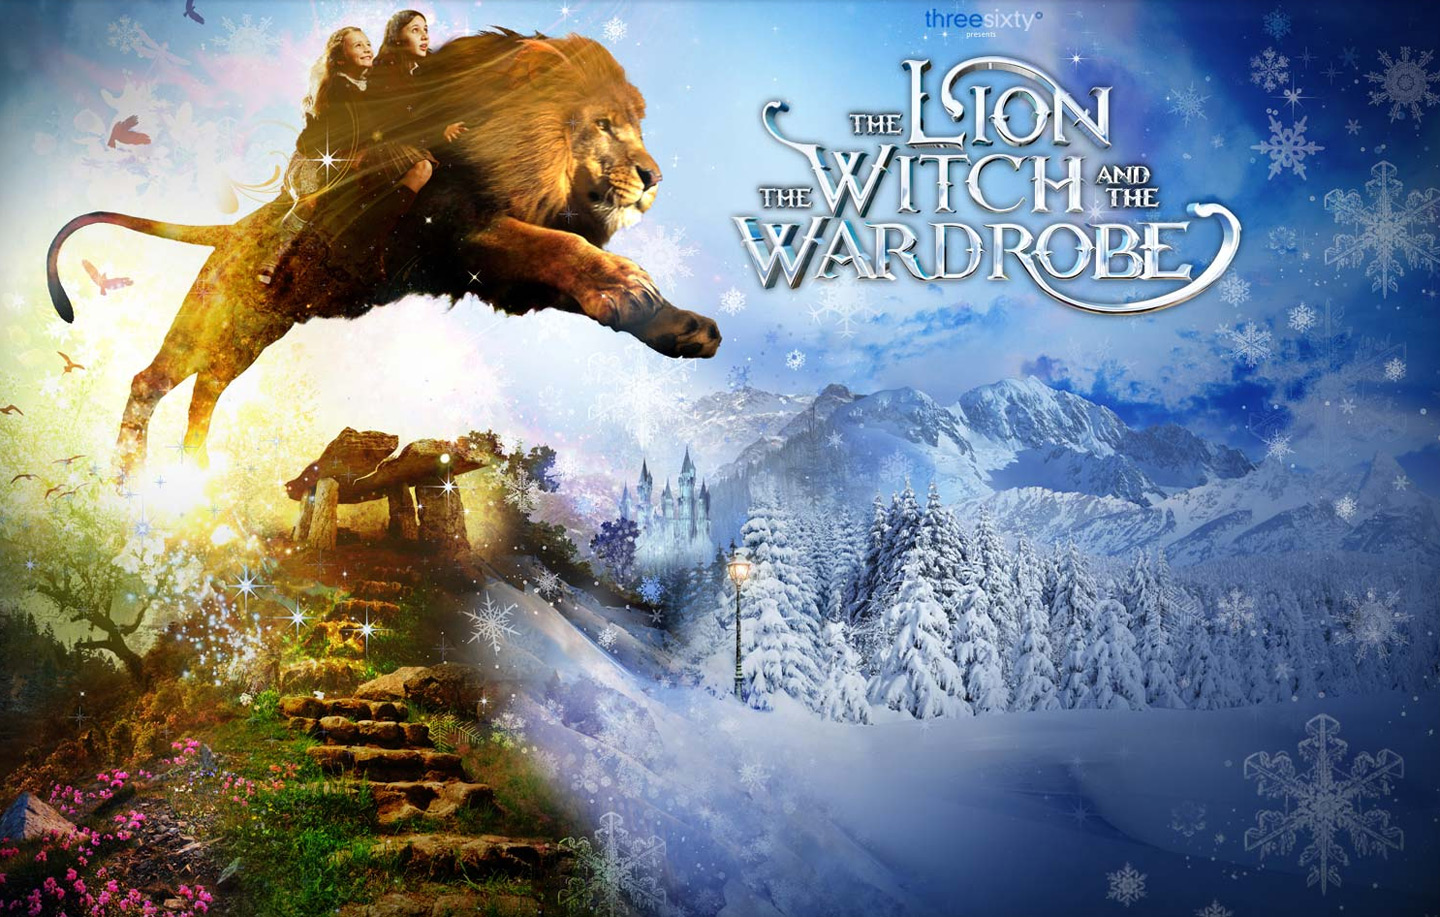 The Lion The Witch And The Wardrobe Rupert Goold Michael Fentiman